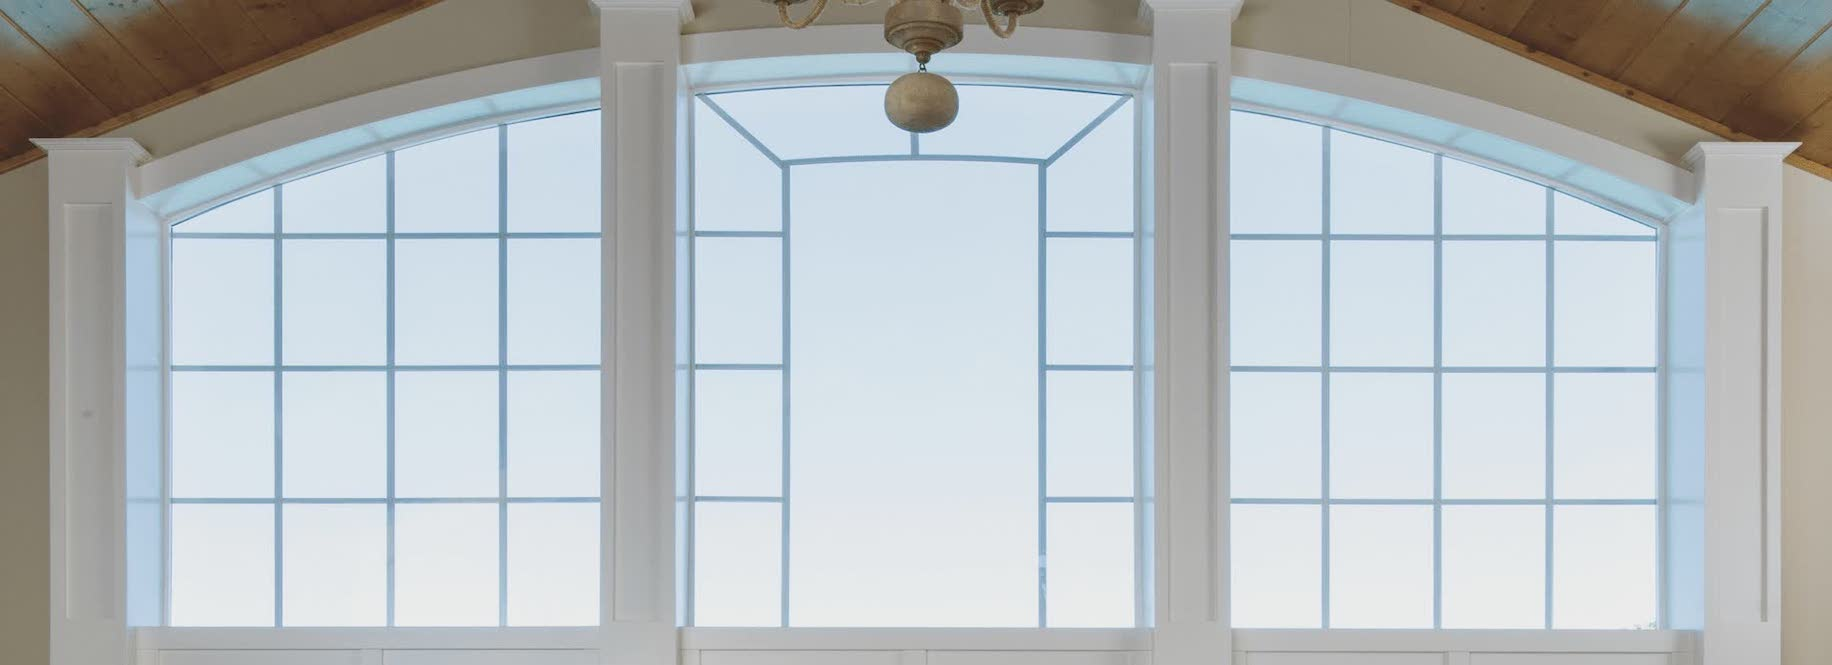 large open window